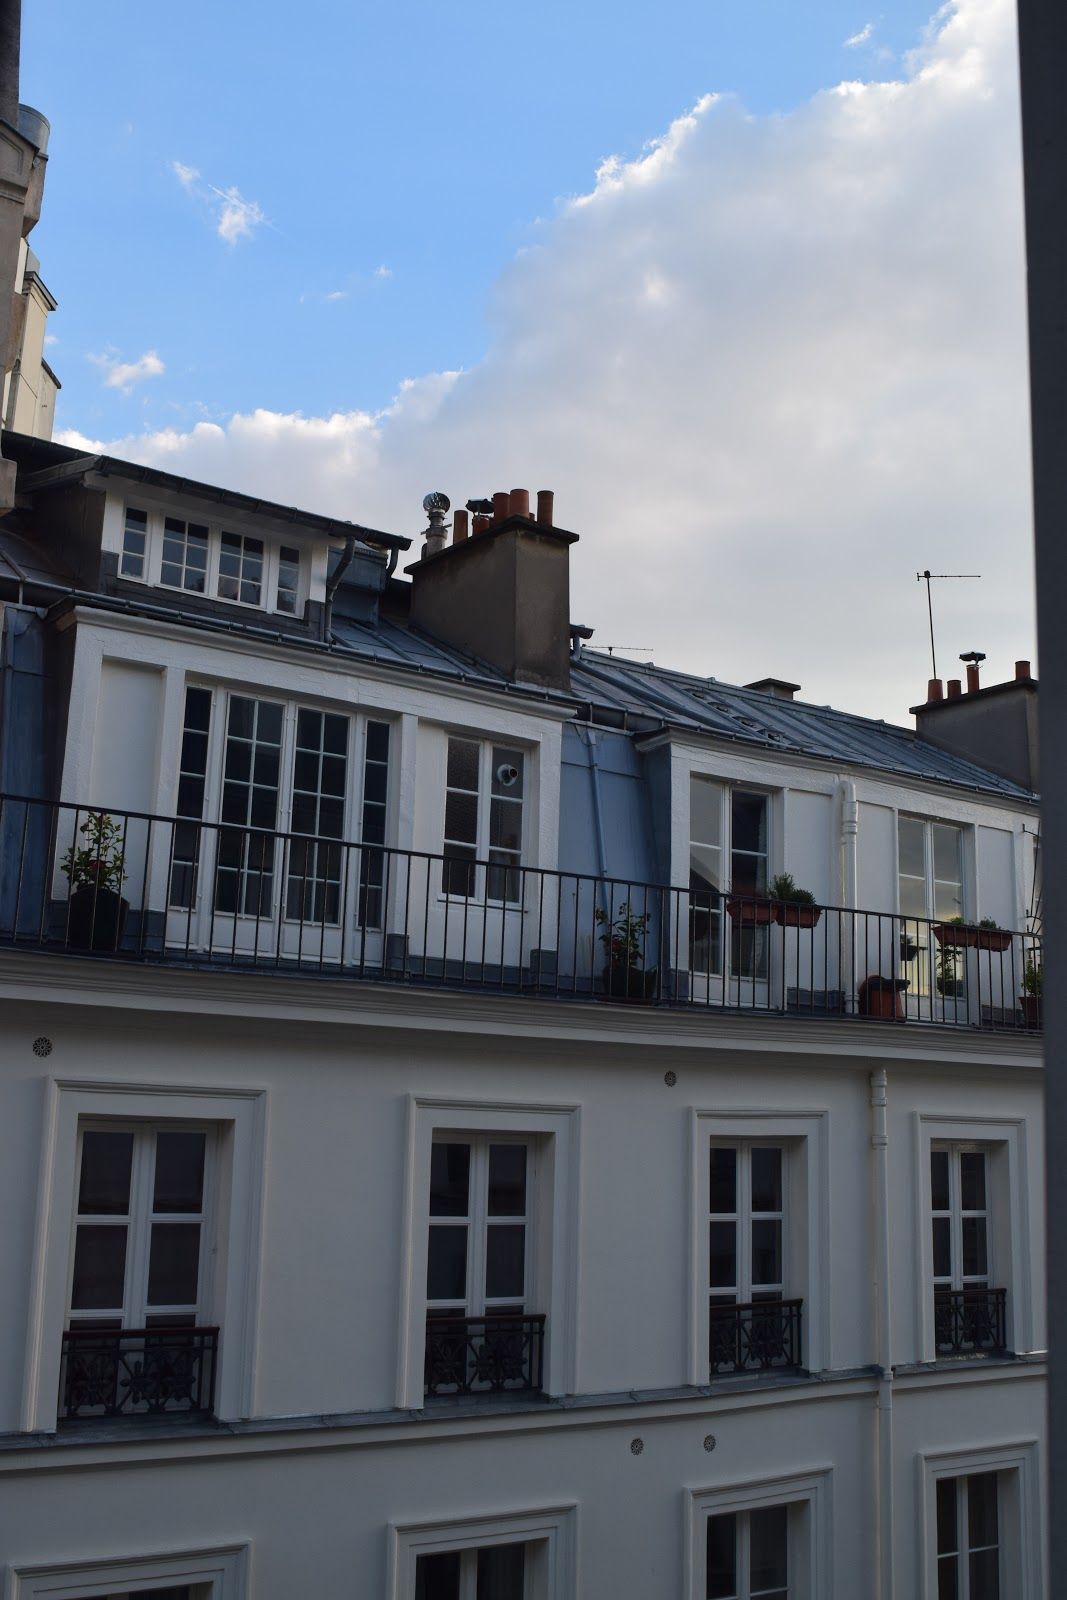 Hotel Belloy St Germain view